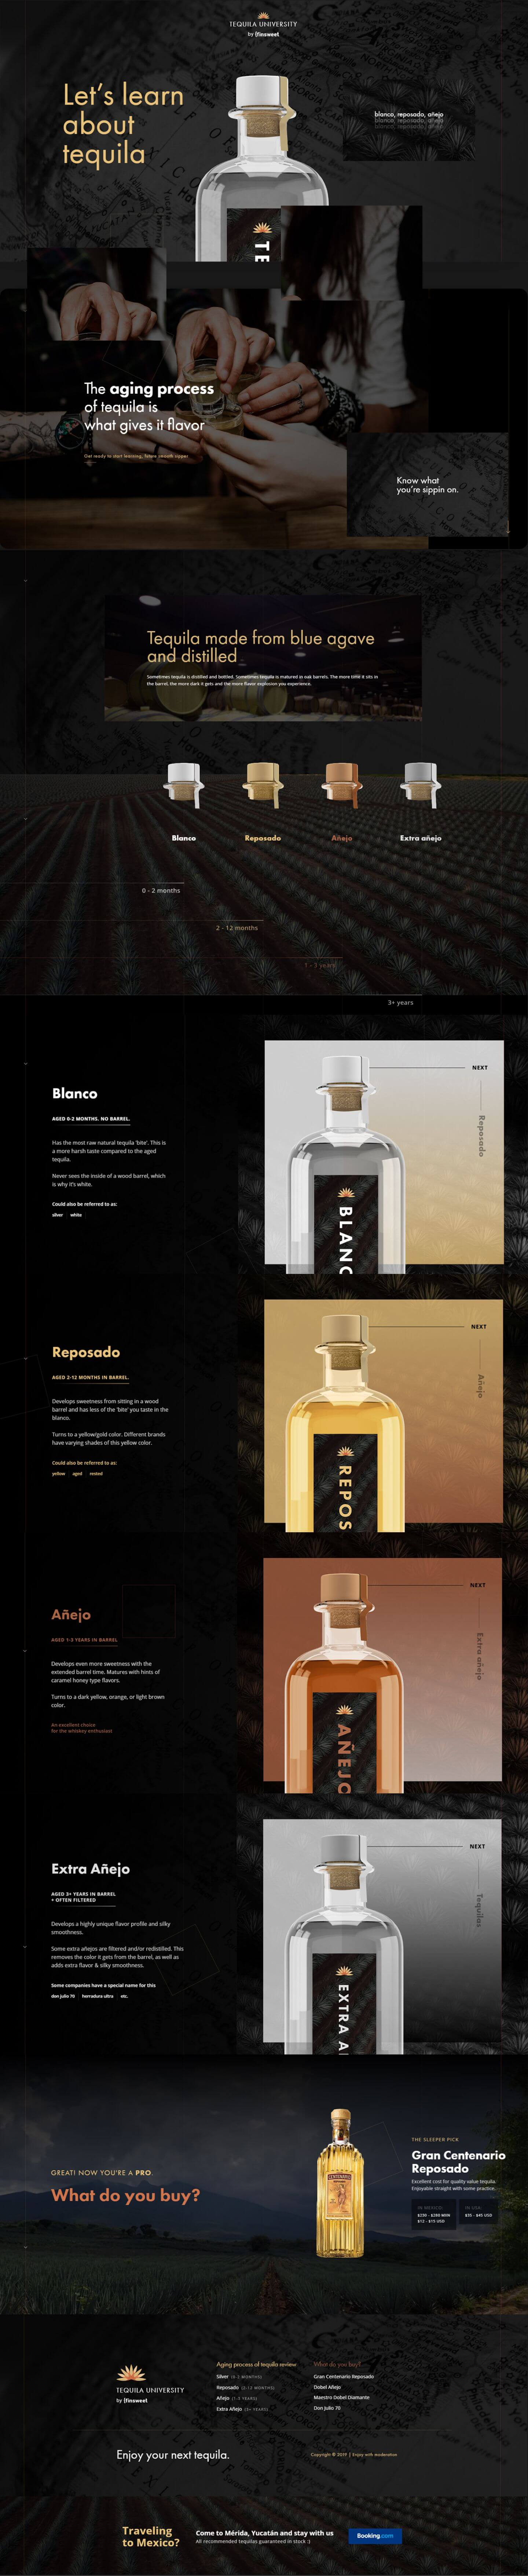 Finsweet Webflow development for Tequila University